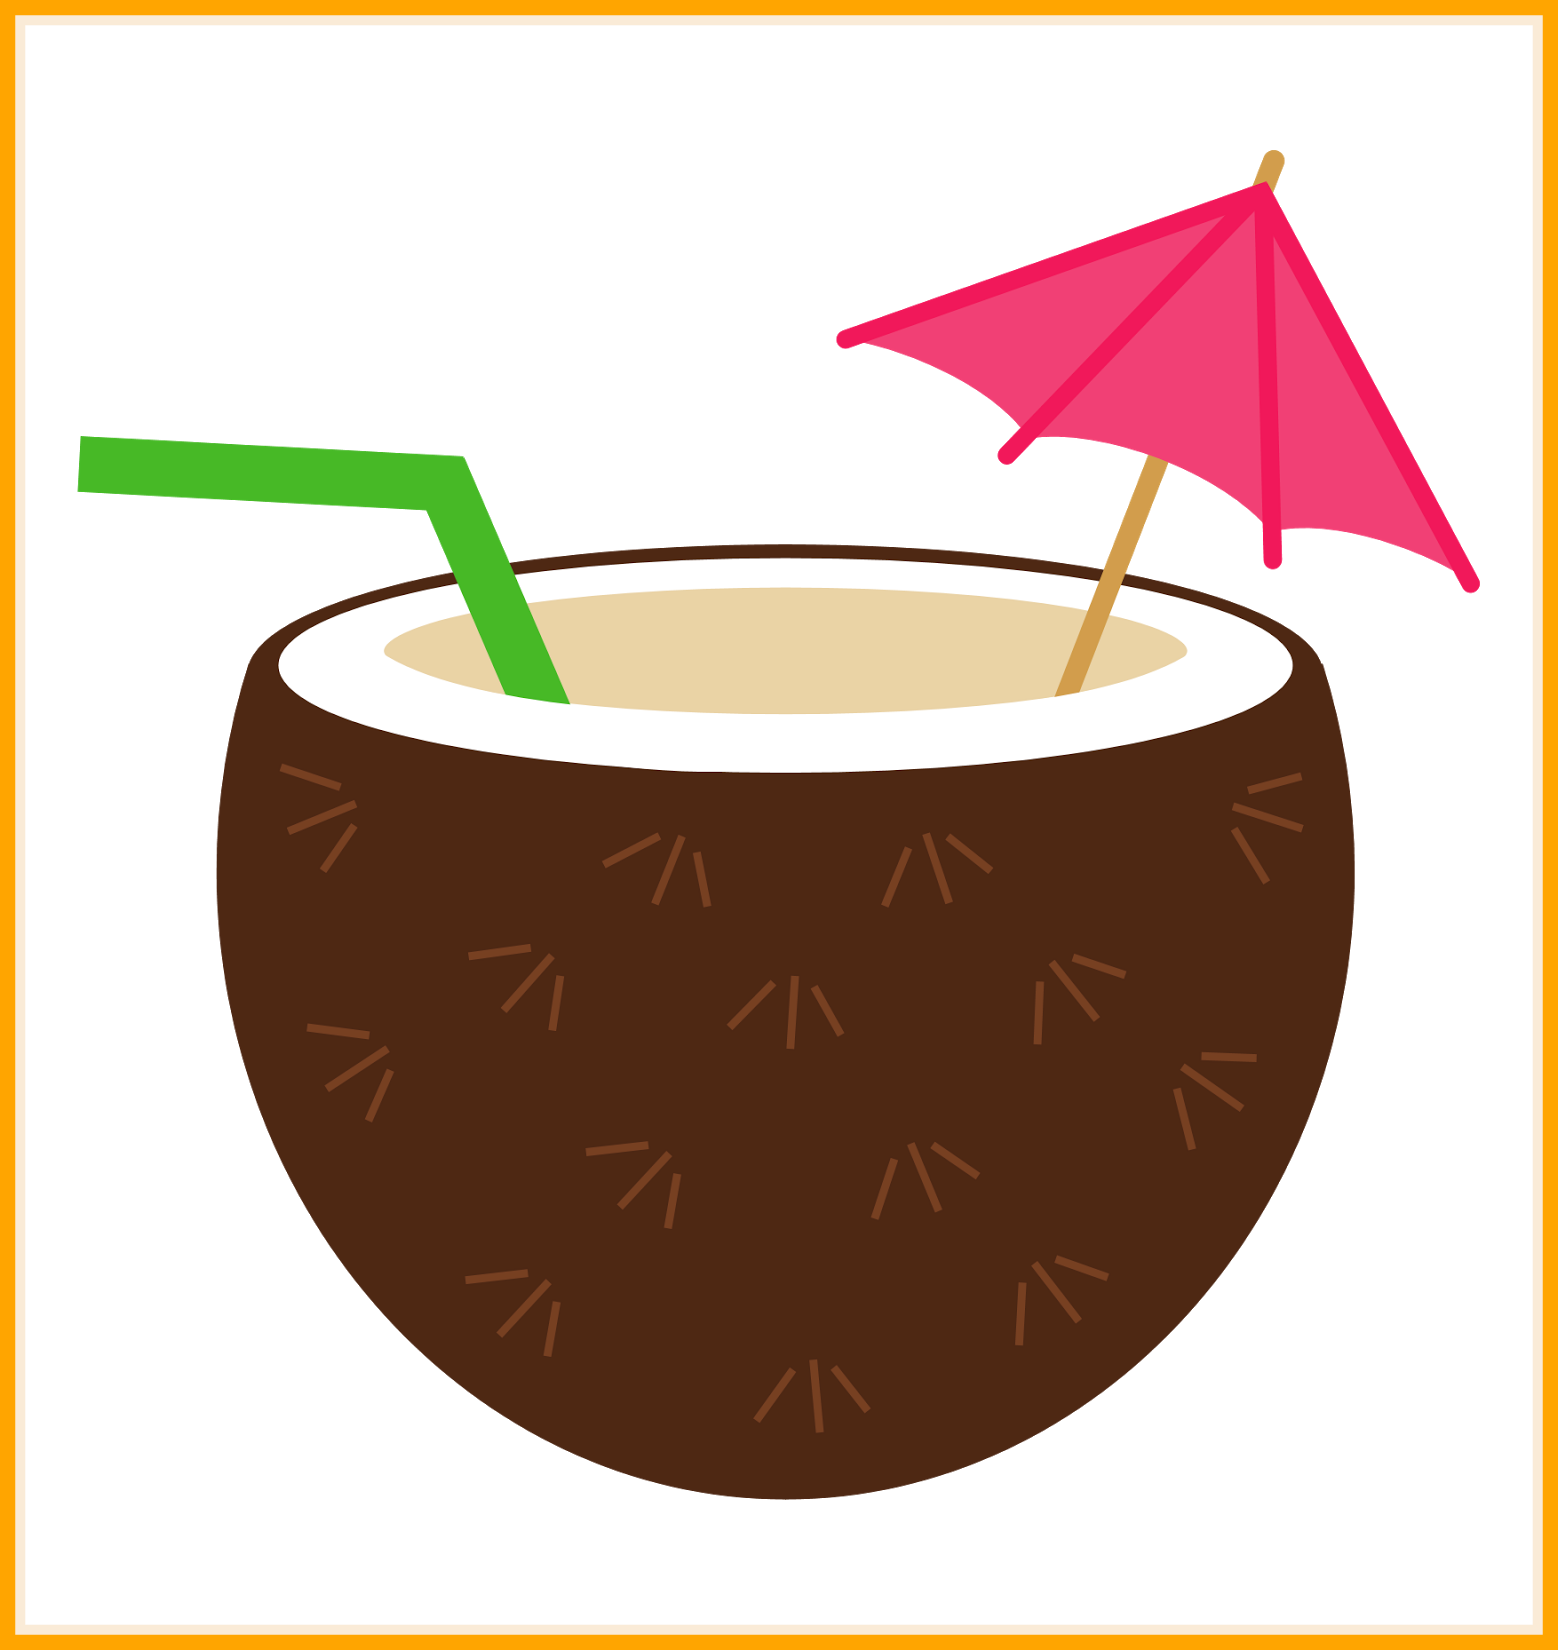 Incredible drawing ing image. Drink clipart coconut